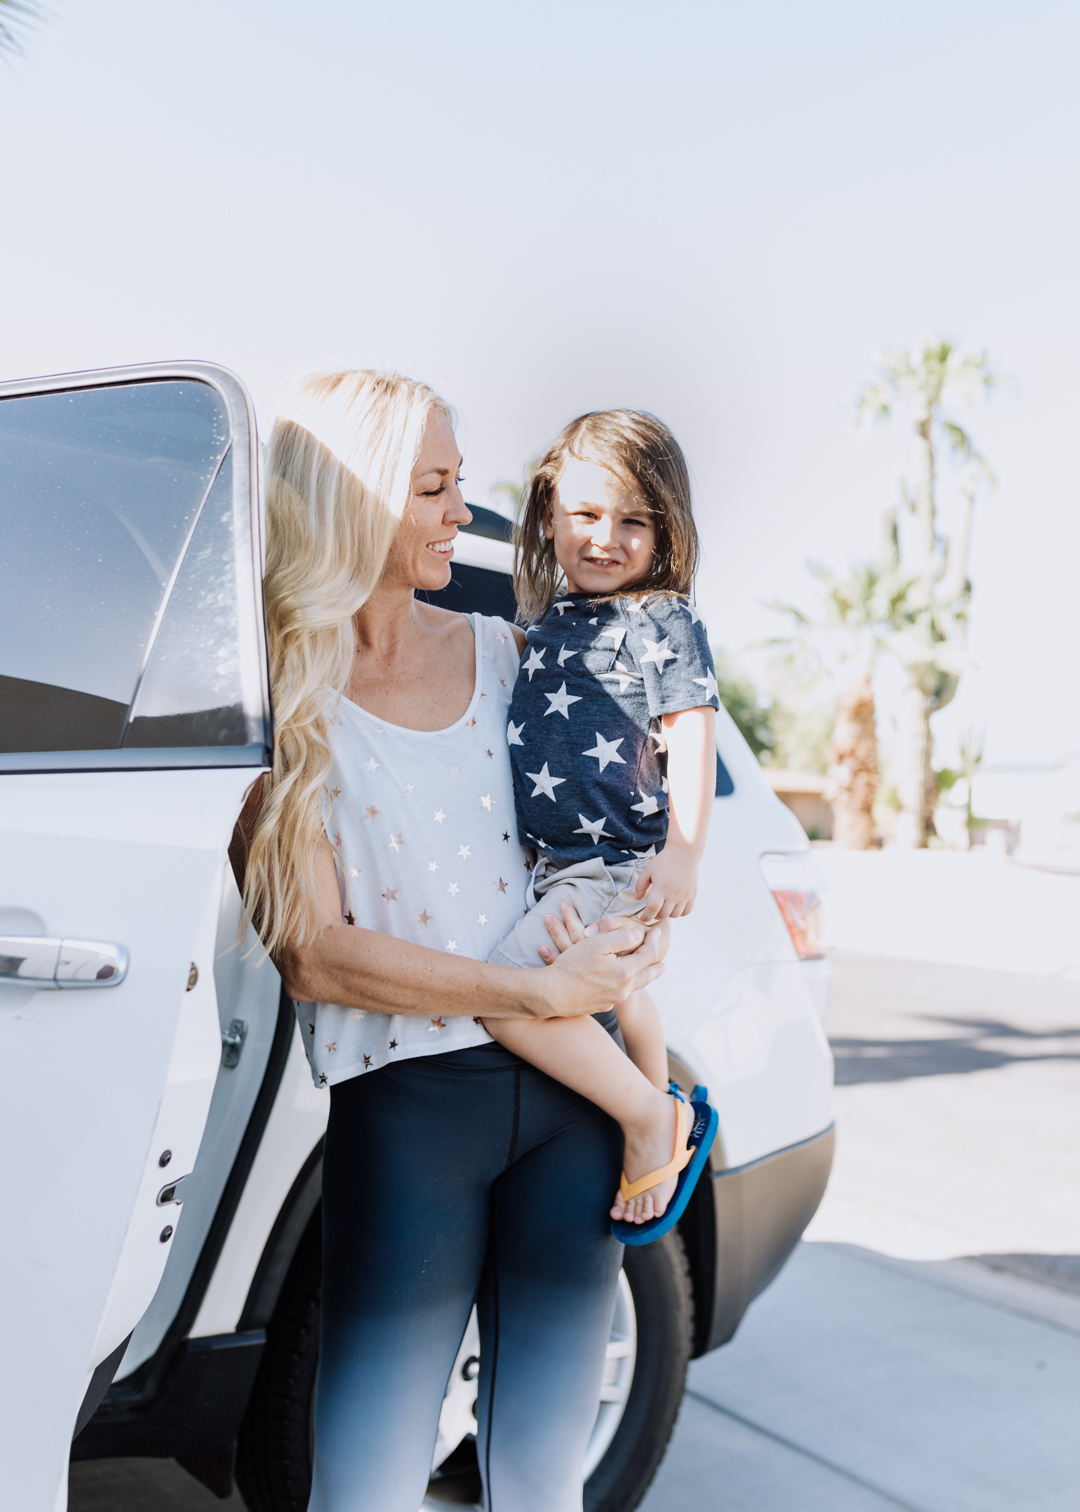 how we get around town for our everyday adventures safely with the Maxi-Cosi Magellan Max carseat | thelovedesignedlife.com #motherhood #toddler #carseat #safety